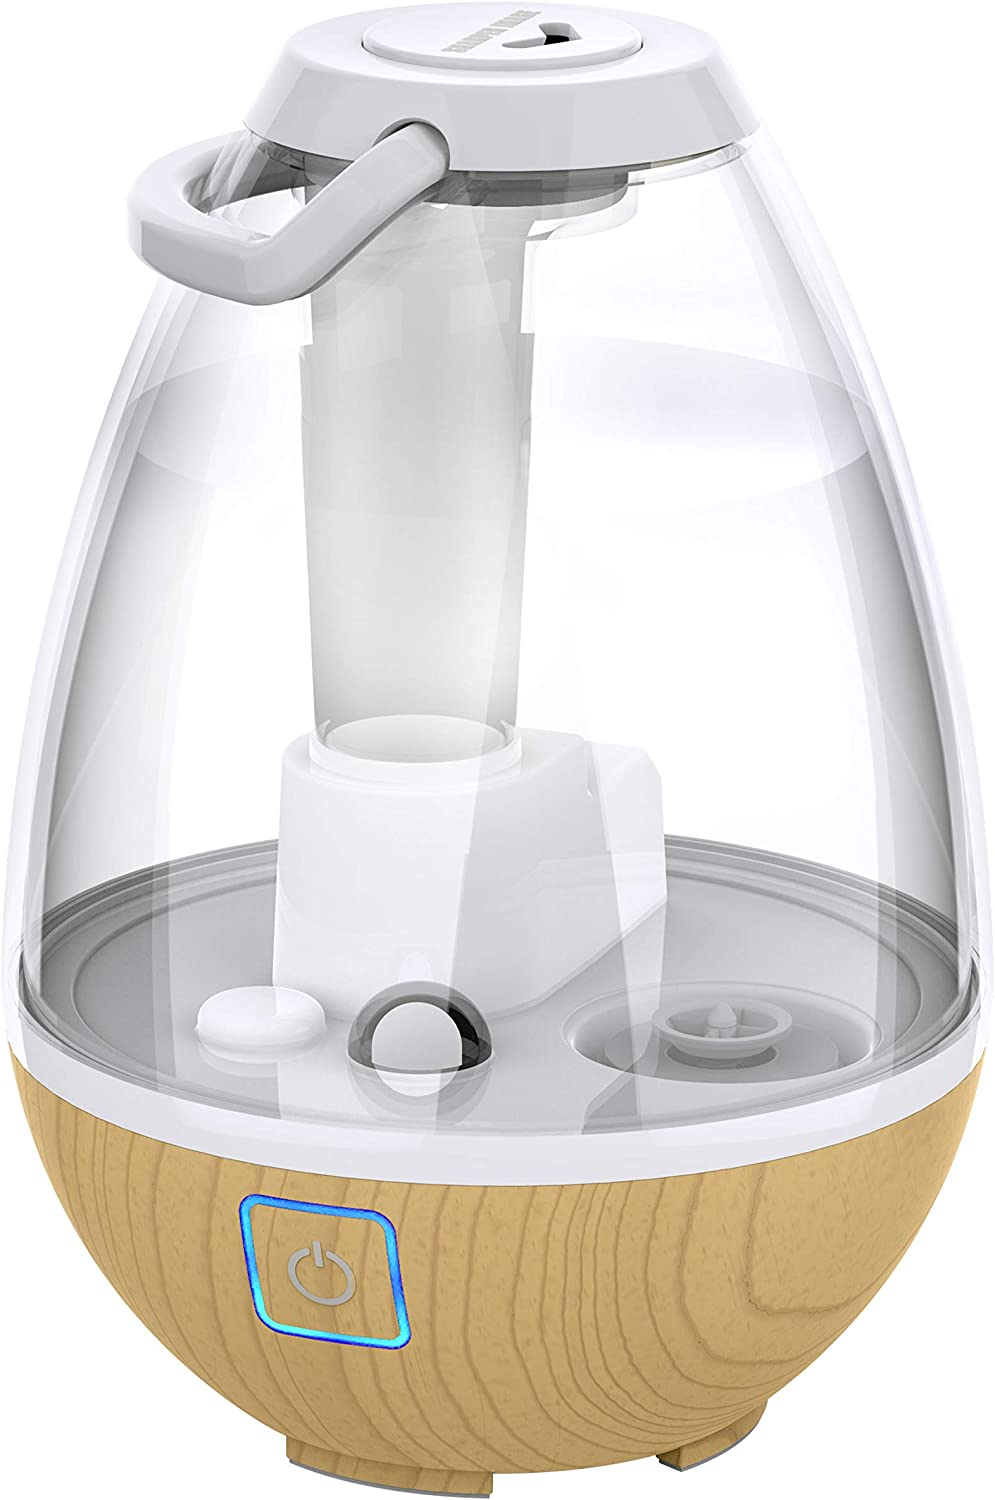 Sharper Image UHT1-SI Ultrasonic Cool Lowest price challenge Gallo Max 68% OFF 0.4 Humidifier Mist